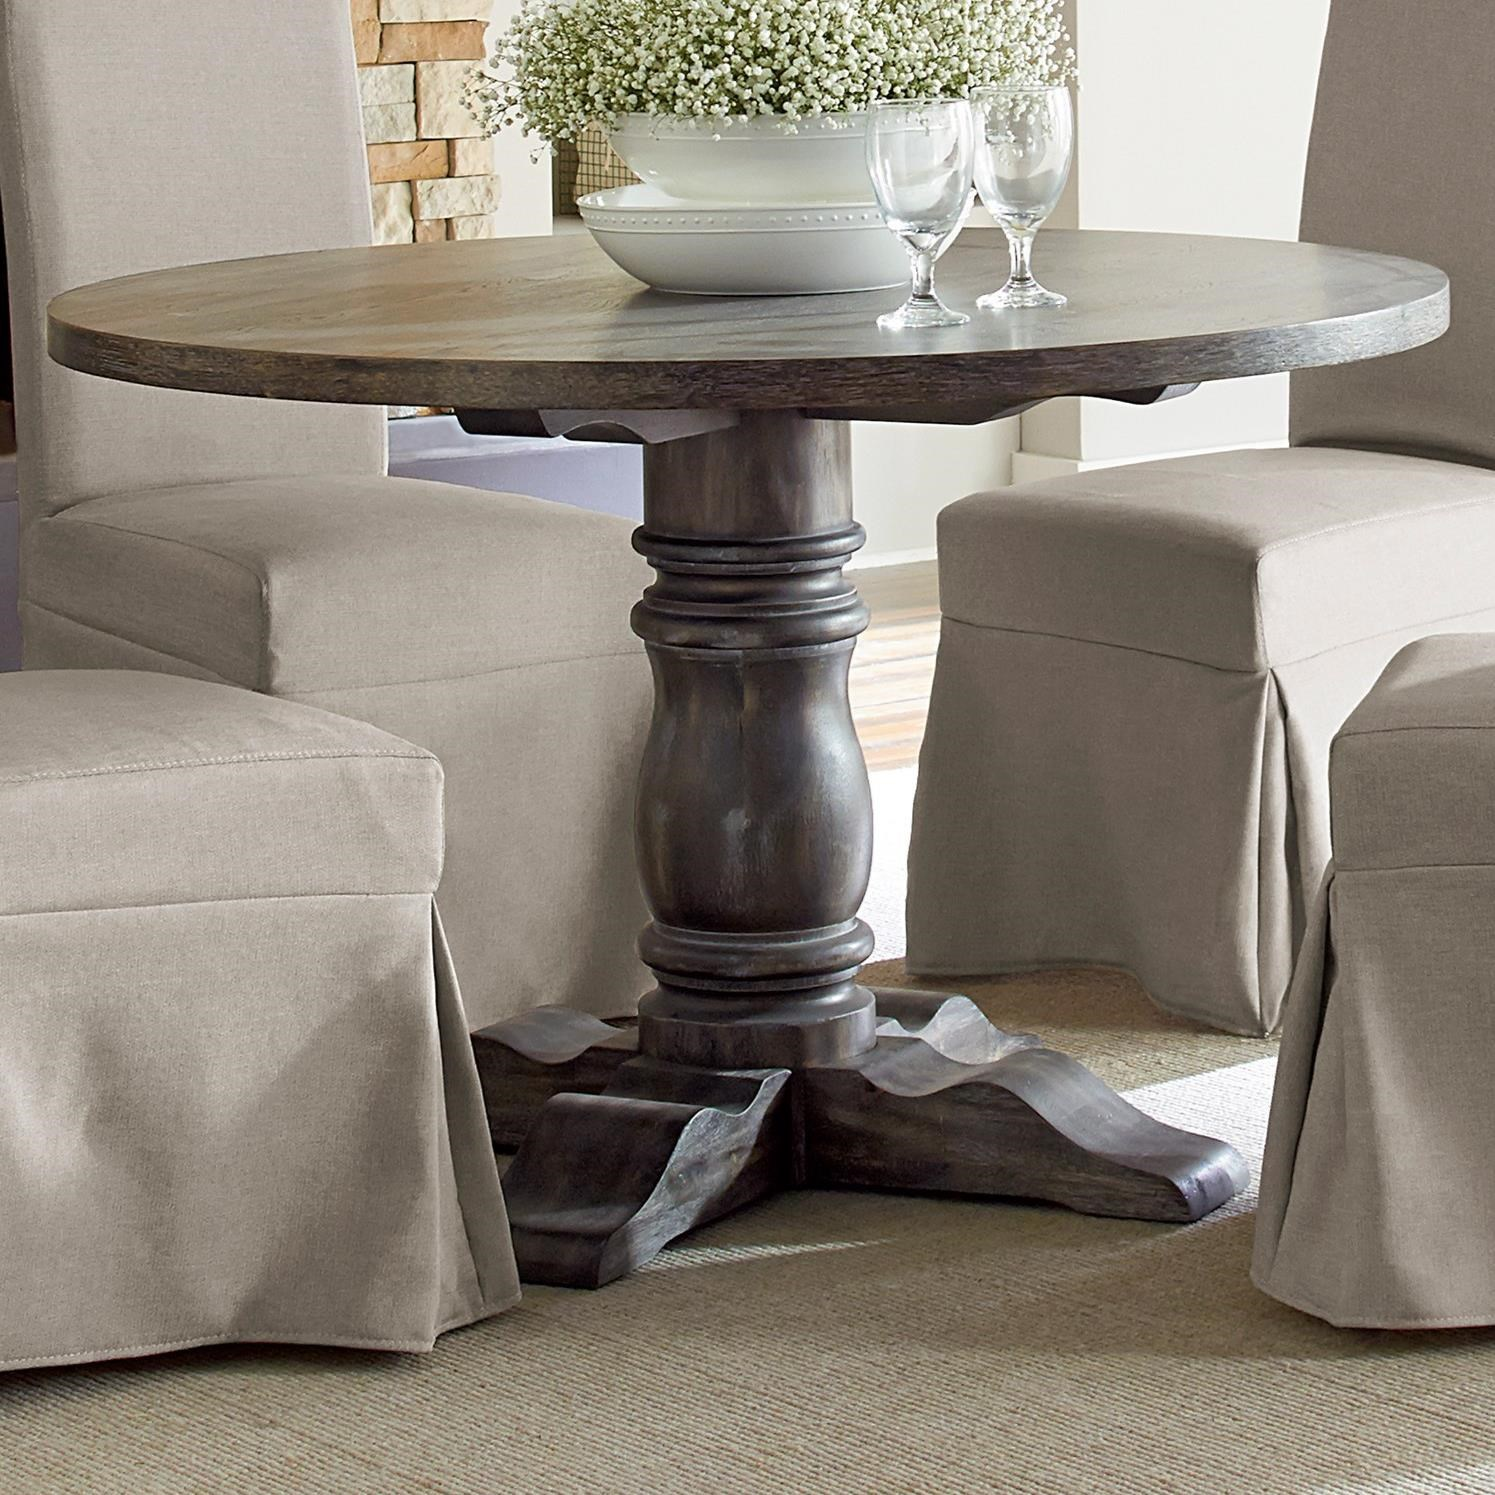 Progressive Furniture Muses Round Dining Table With Turned